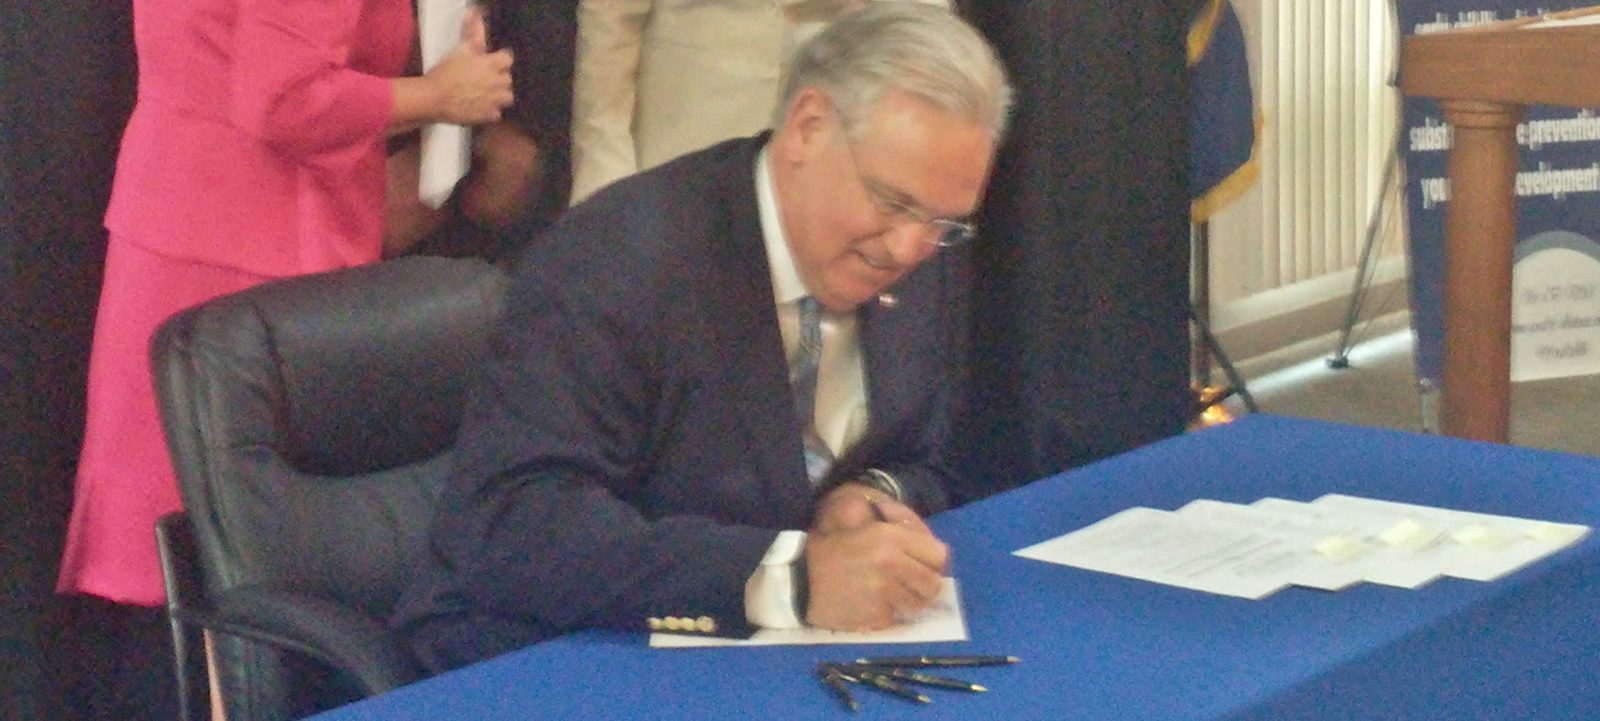 Gov. Nixon signs Youth Protection Bills during visit to St. Joseph